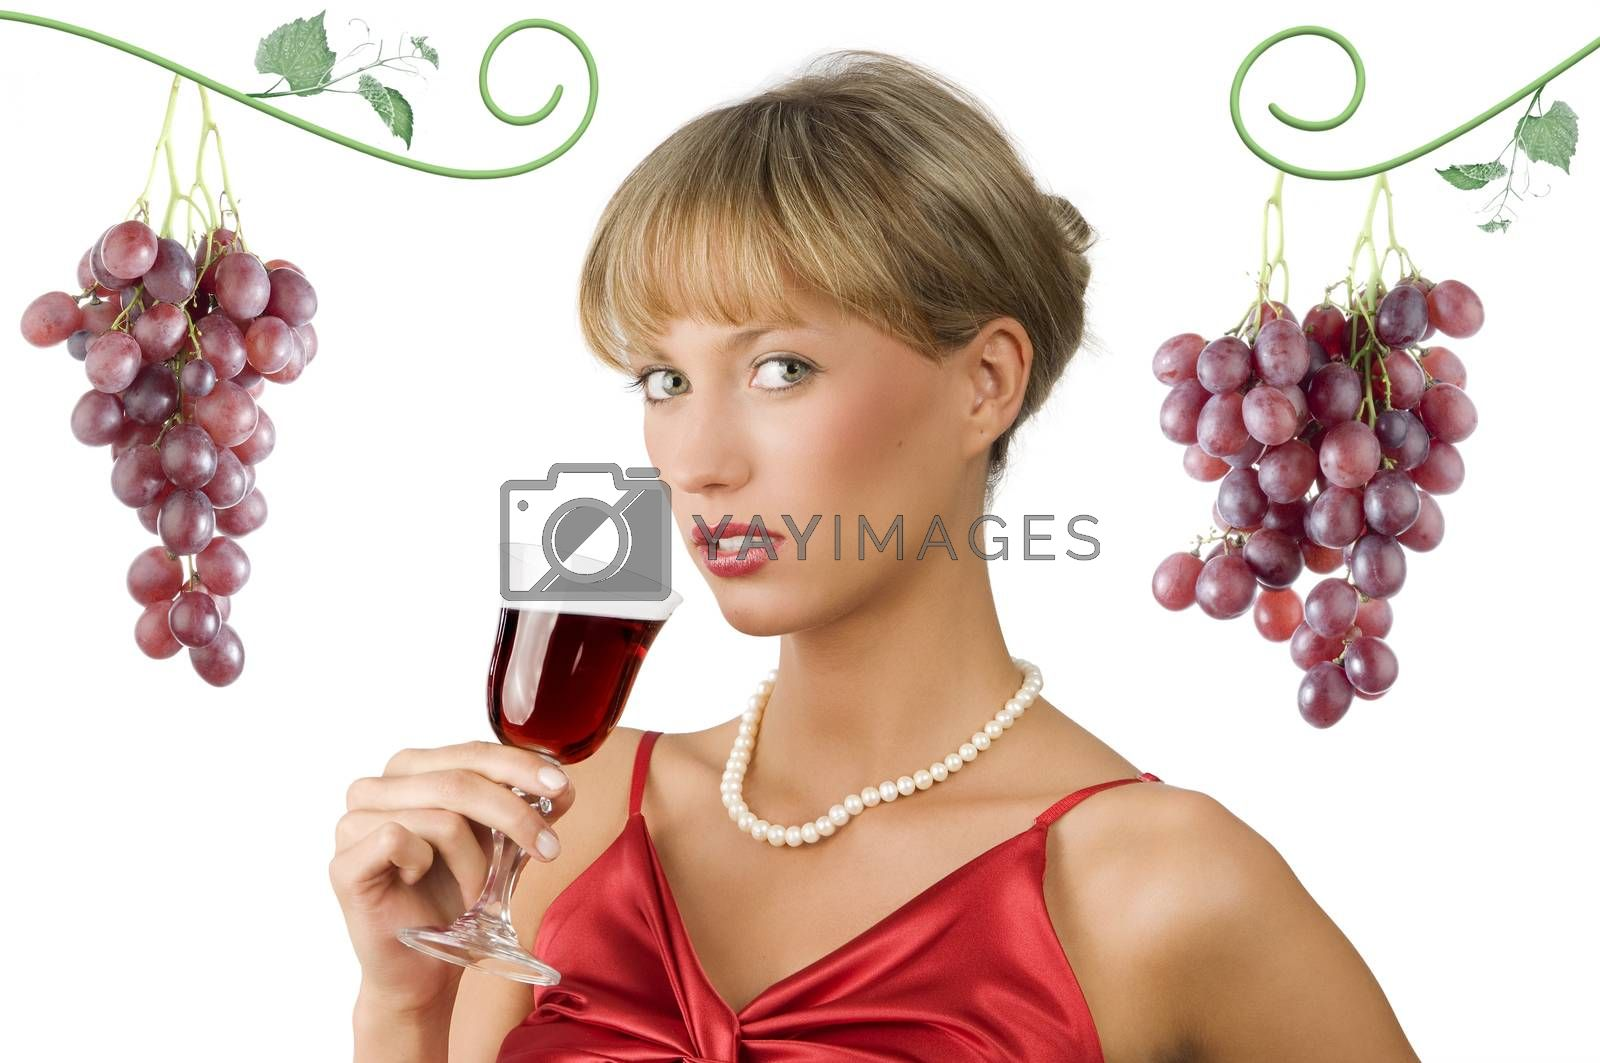 Royalty free image of red wine and red dress by fotoCD